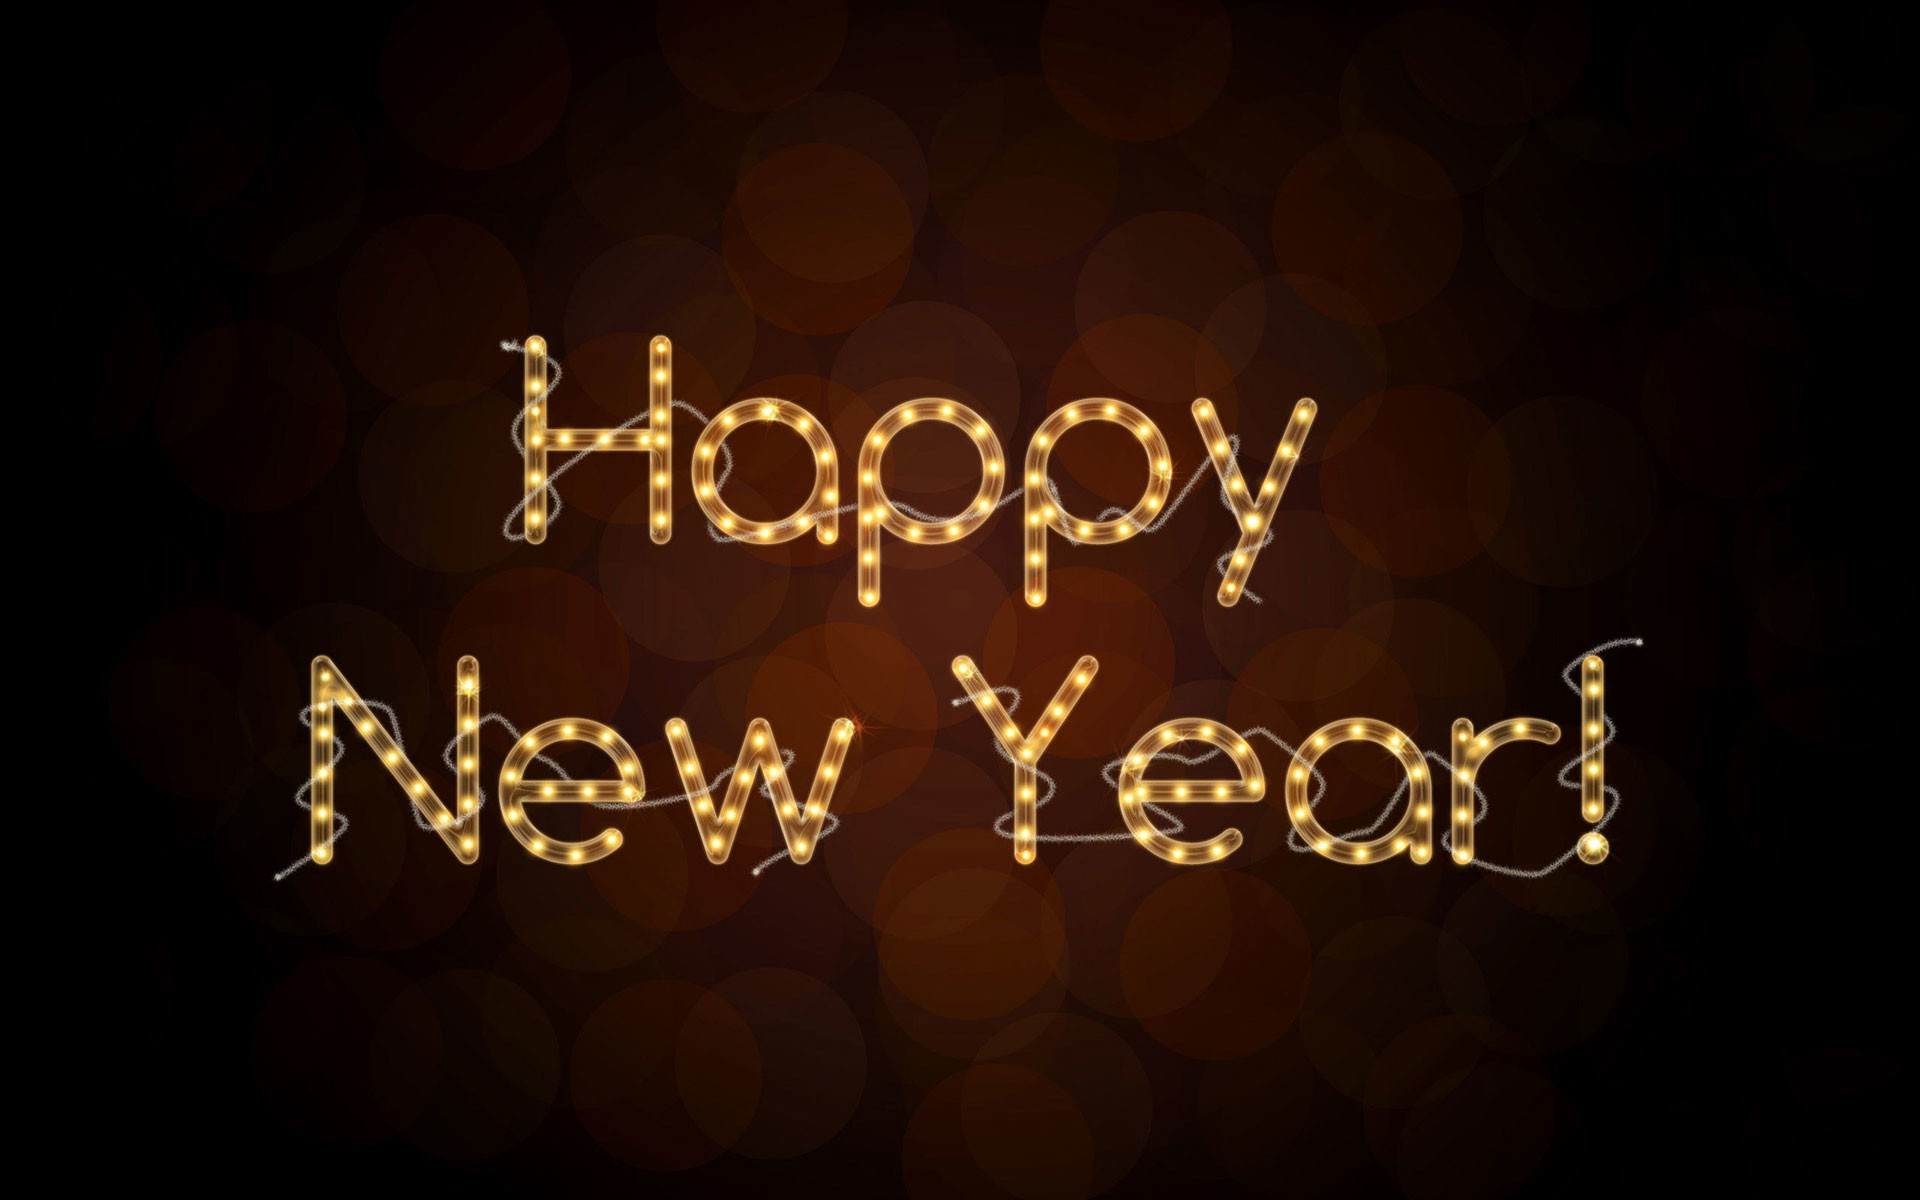 2560x1440 download new year wallpapers 2018 hd images happy